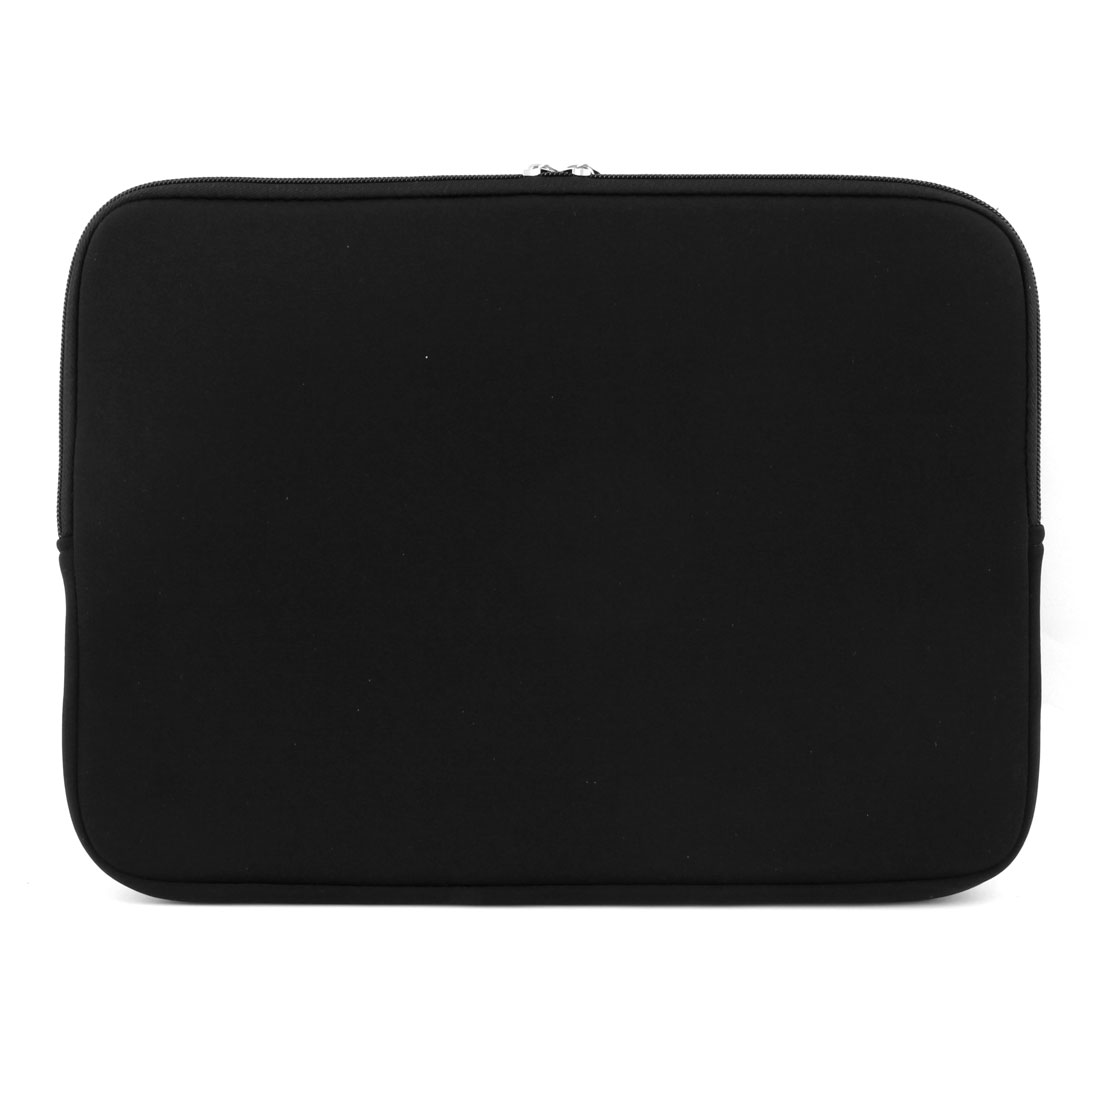 PC Loptop Neoprene Zipper Sleeve Cover Bag Black for Macbook Air Pro 11 Inch